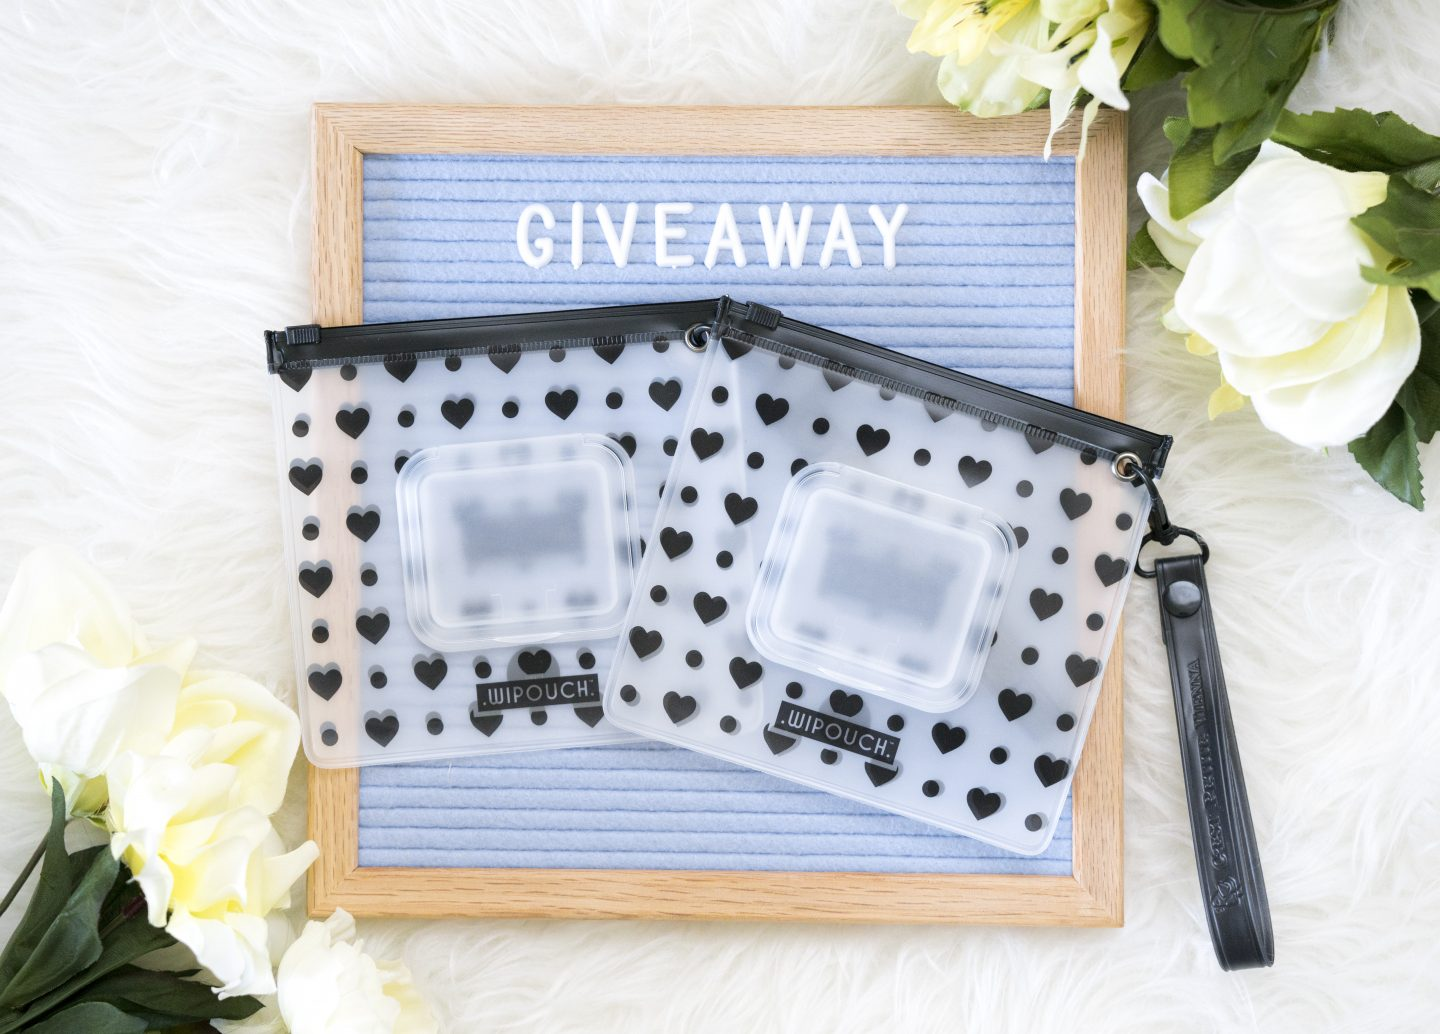 So Much Hearts For The Wipouch Mini + Giveaway